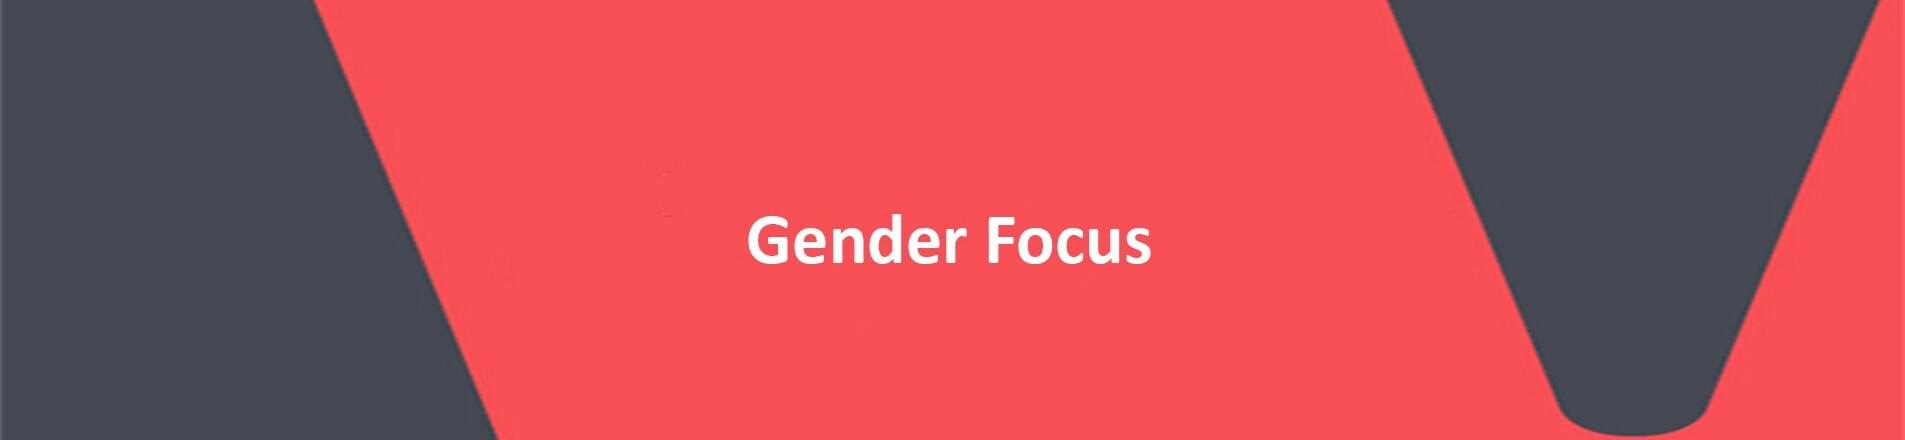 Red background with white text overlaid, spelling Gender Focus.